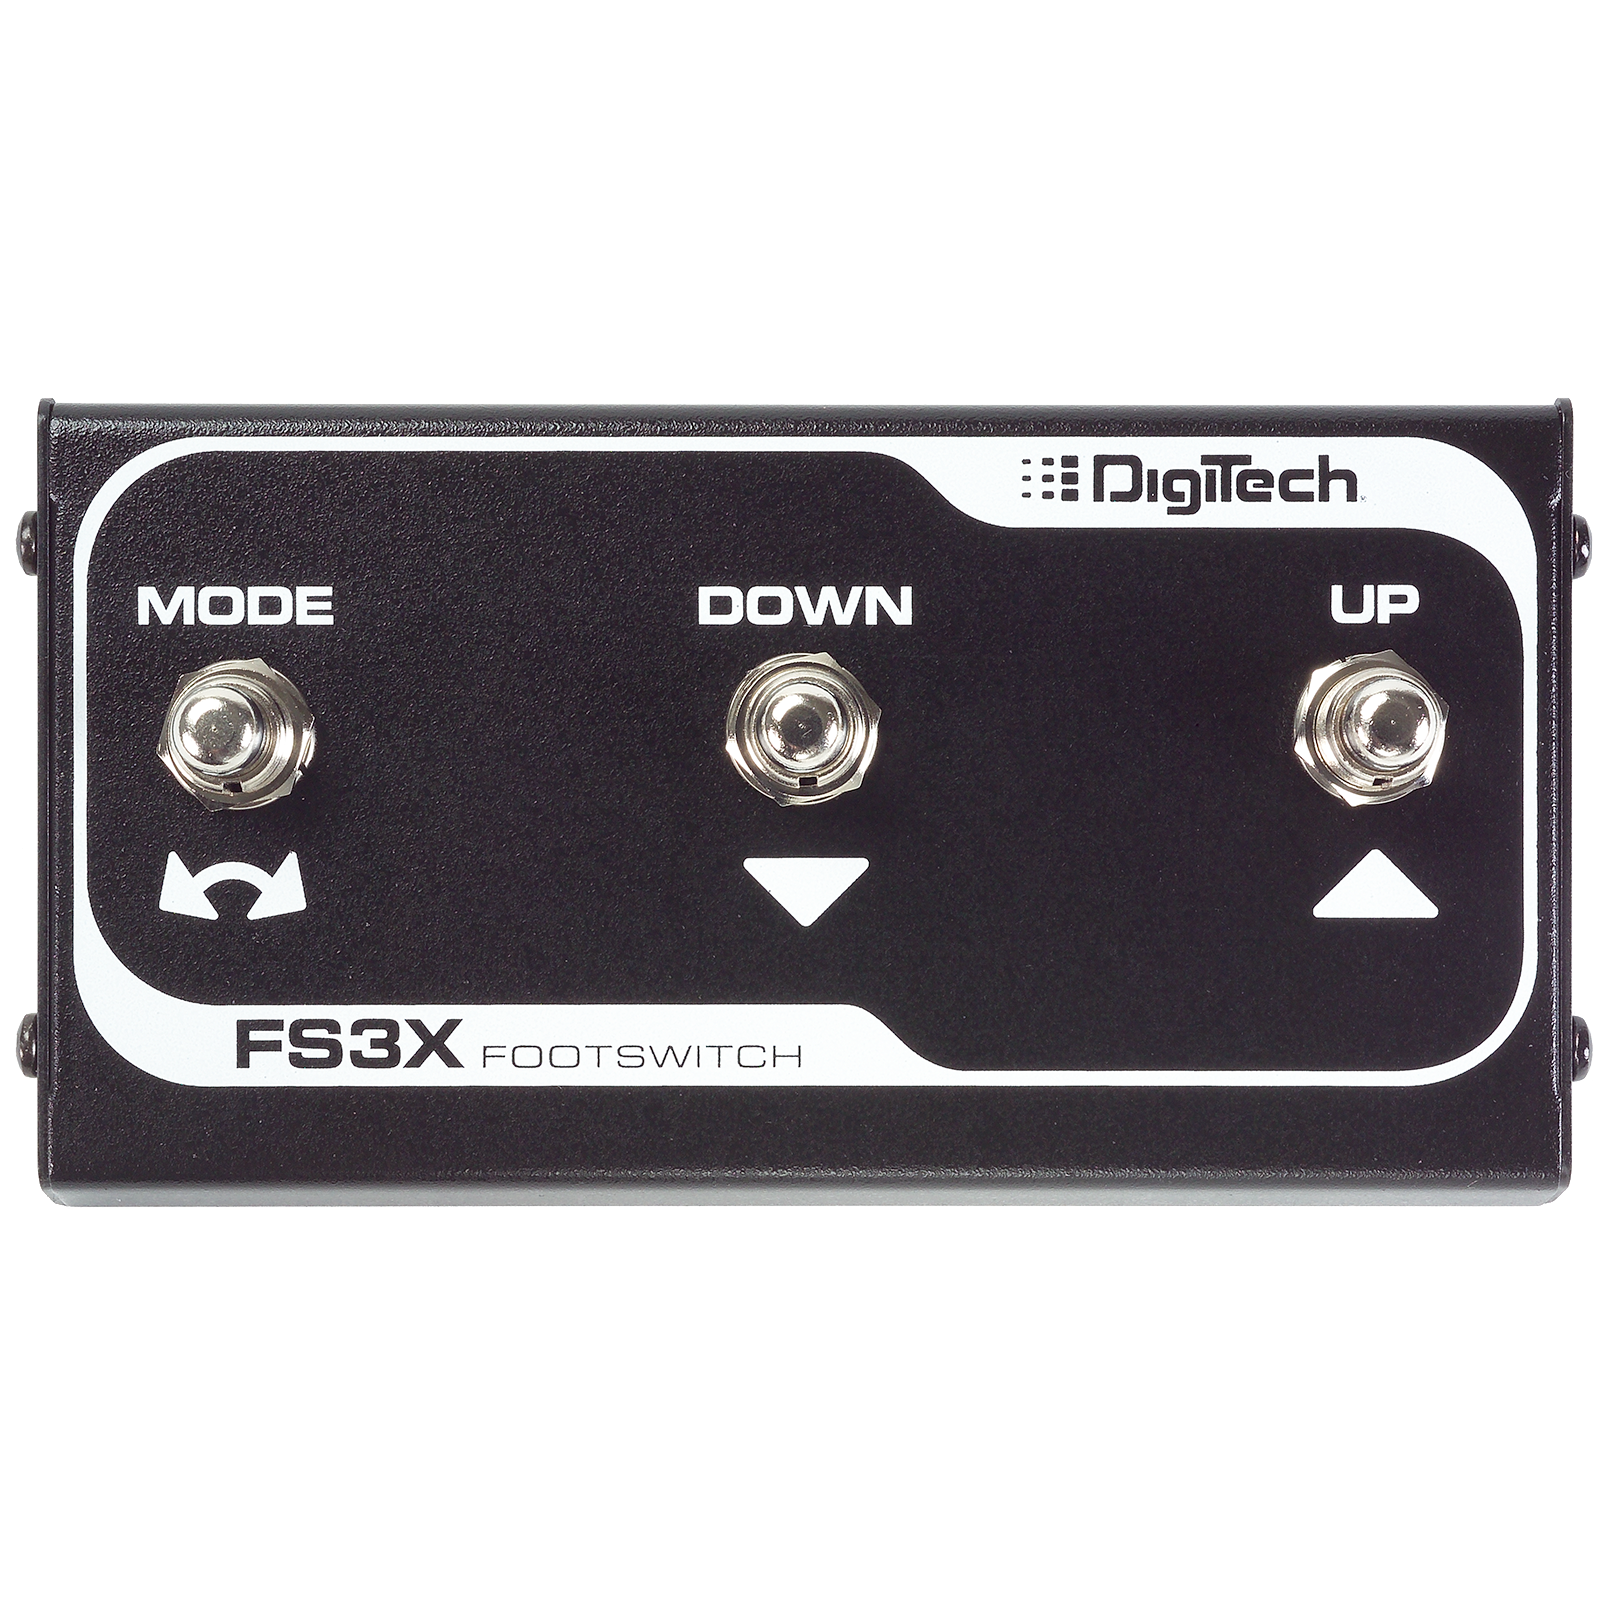 FS3X 3-Button Footswitch